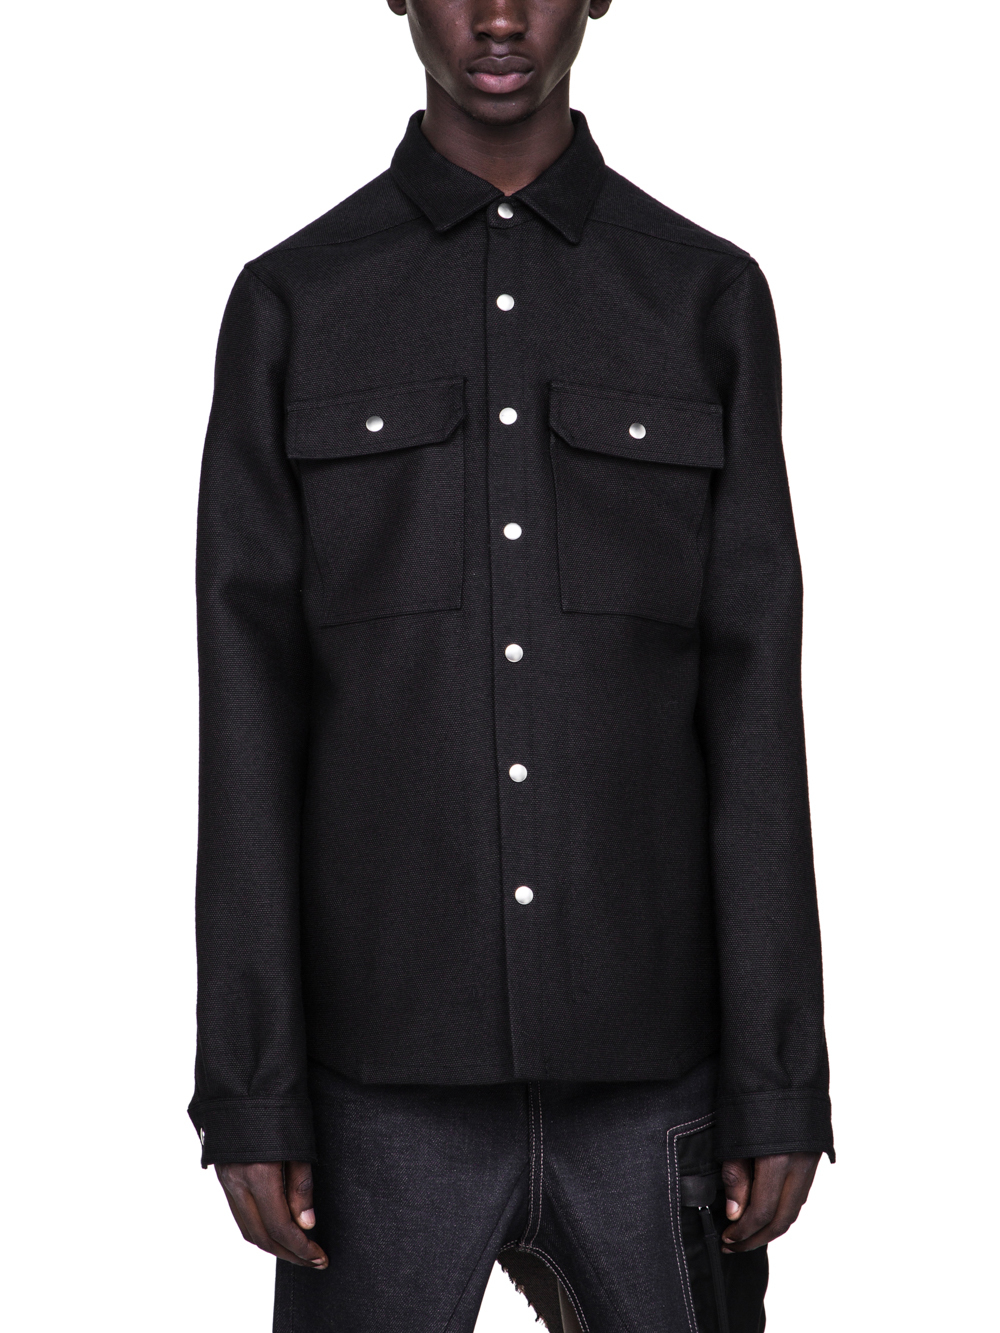 RICK OWENS FW18 SISYPHUS OFF-THE-RUNWAY OUTER SHIRT IN BROWN BLACK WOOL